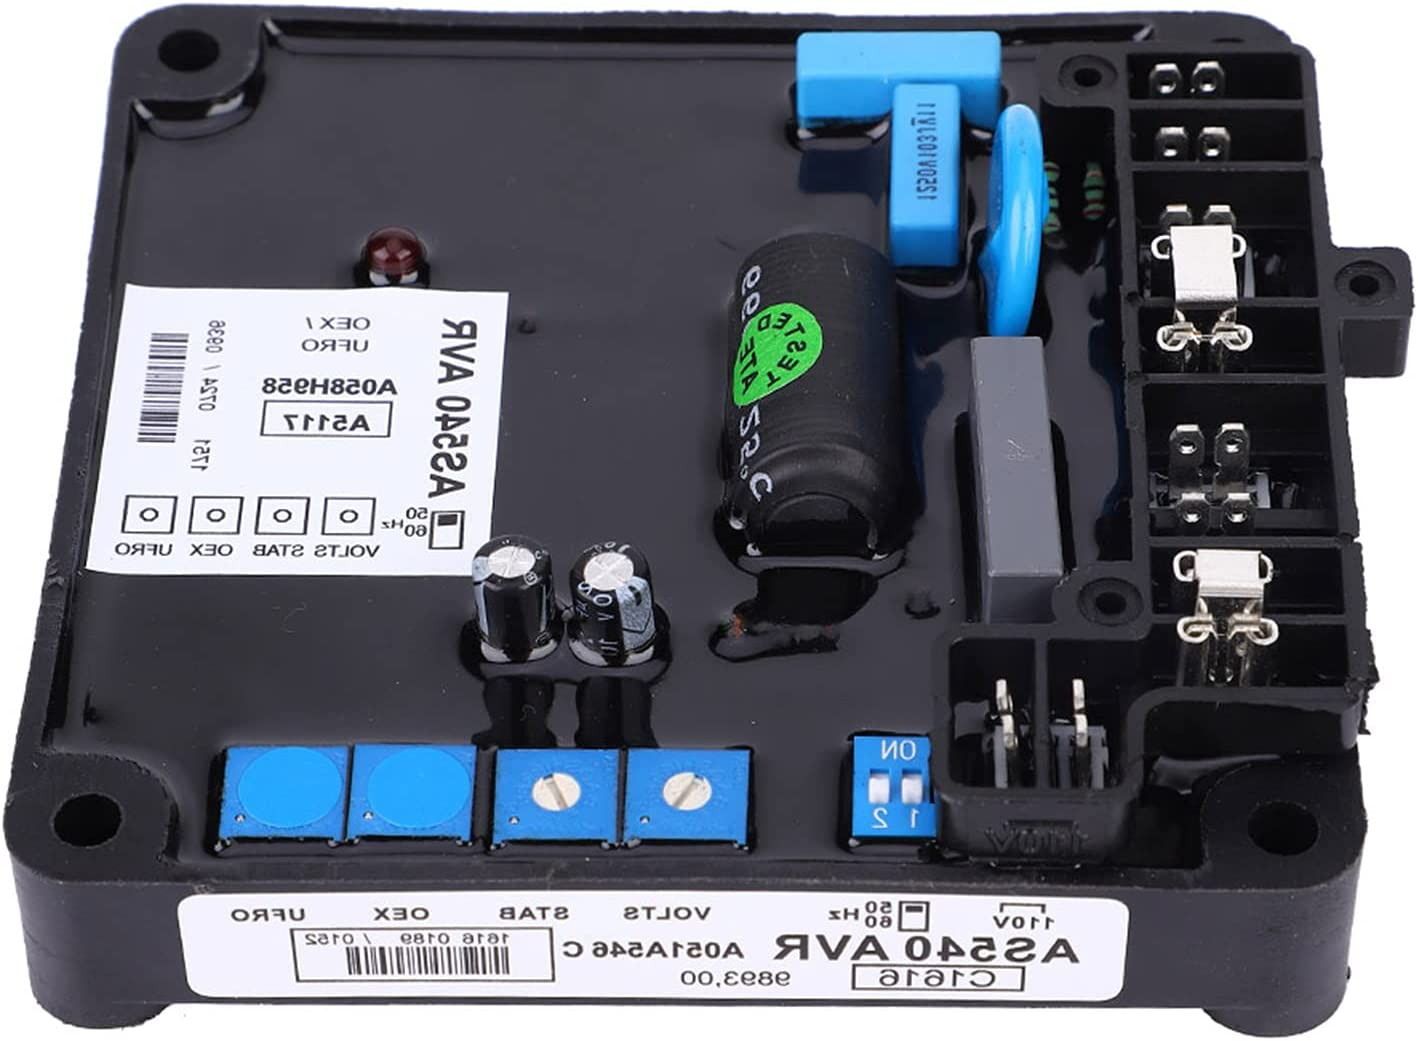 Shipenophy Voltage Regulator AVR Automatic Credence Automa ±1Accuracy Max 58% OFF